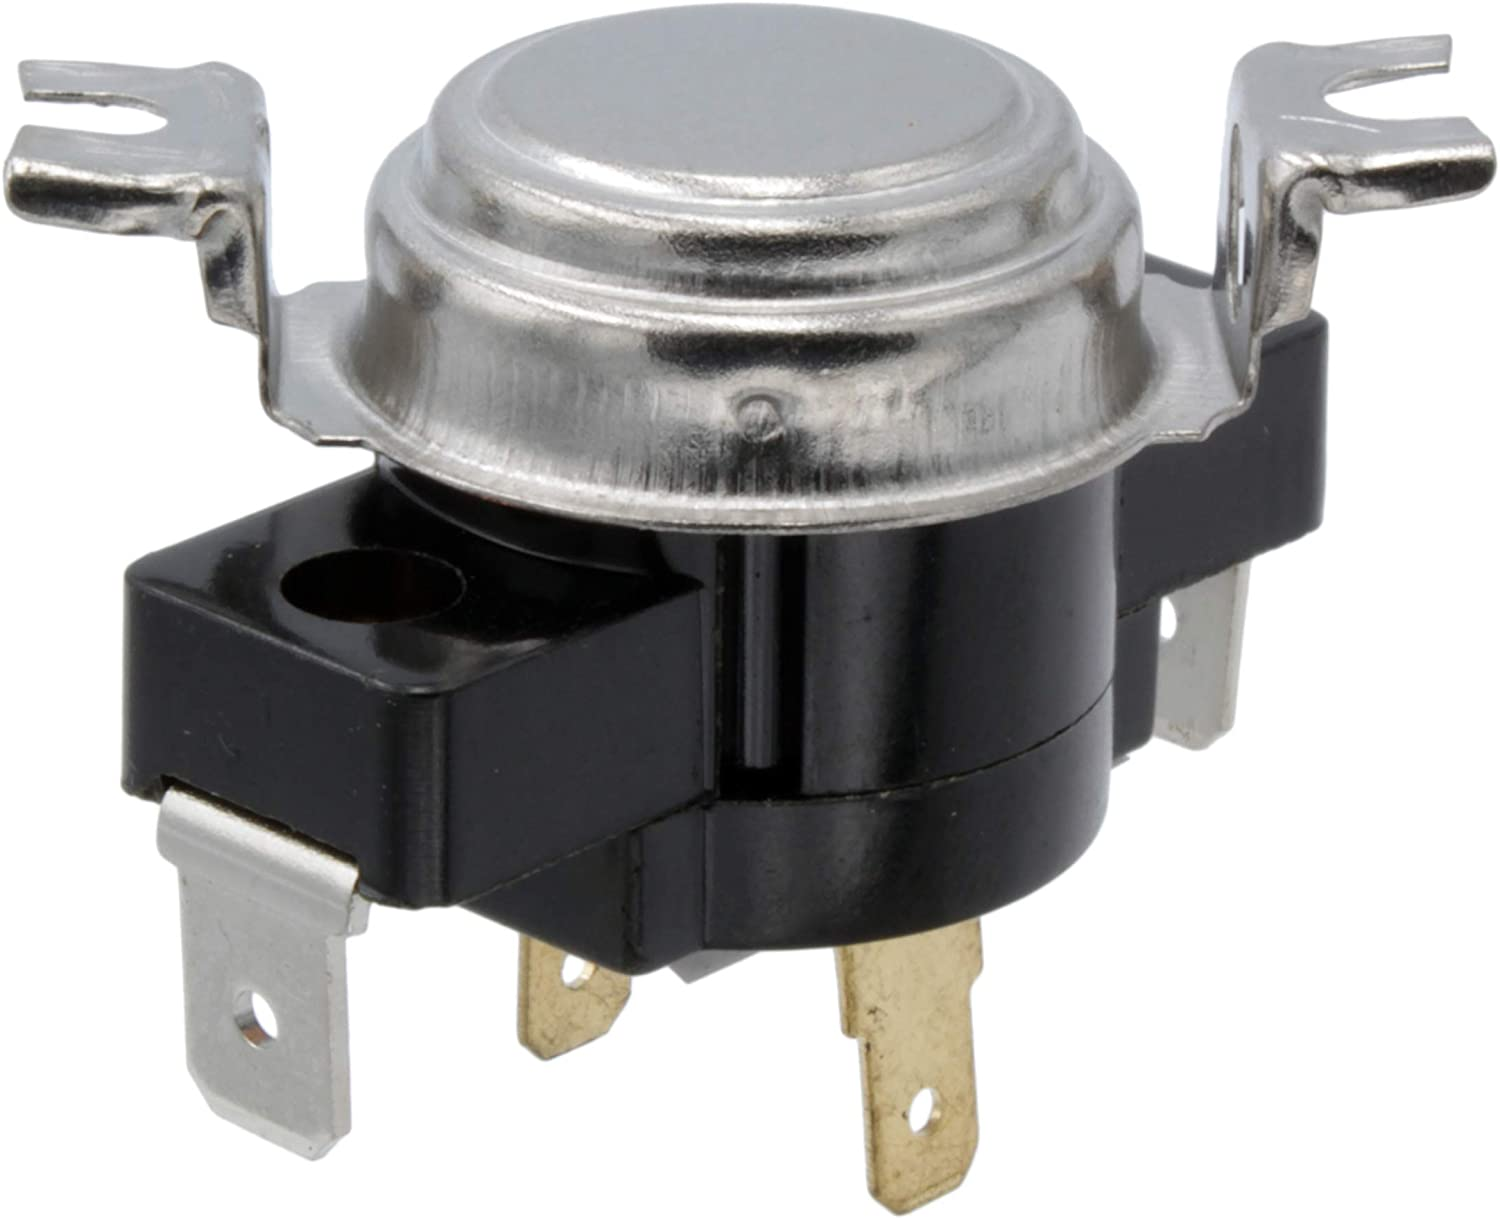 Supplying Demand WE4M181 Dryer Cycling 4 Wire Thermostat Compatible With 276464, AH267926